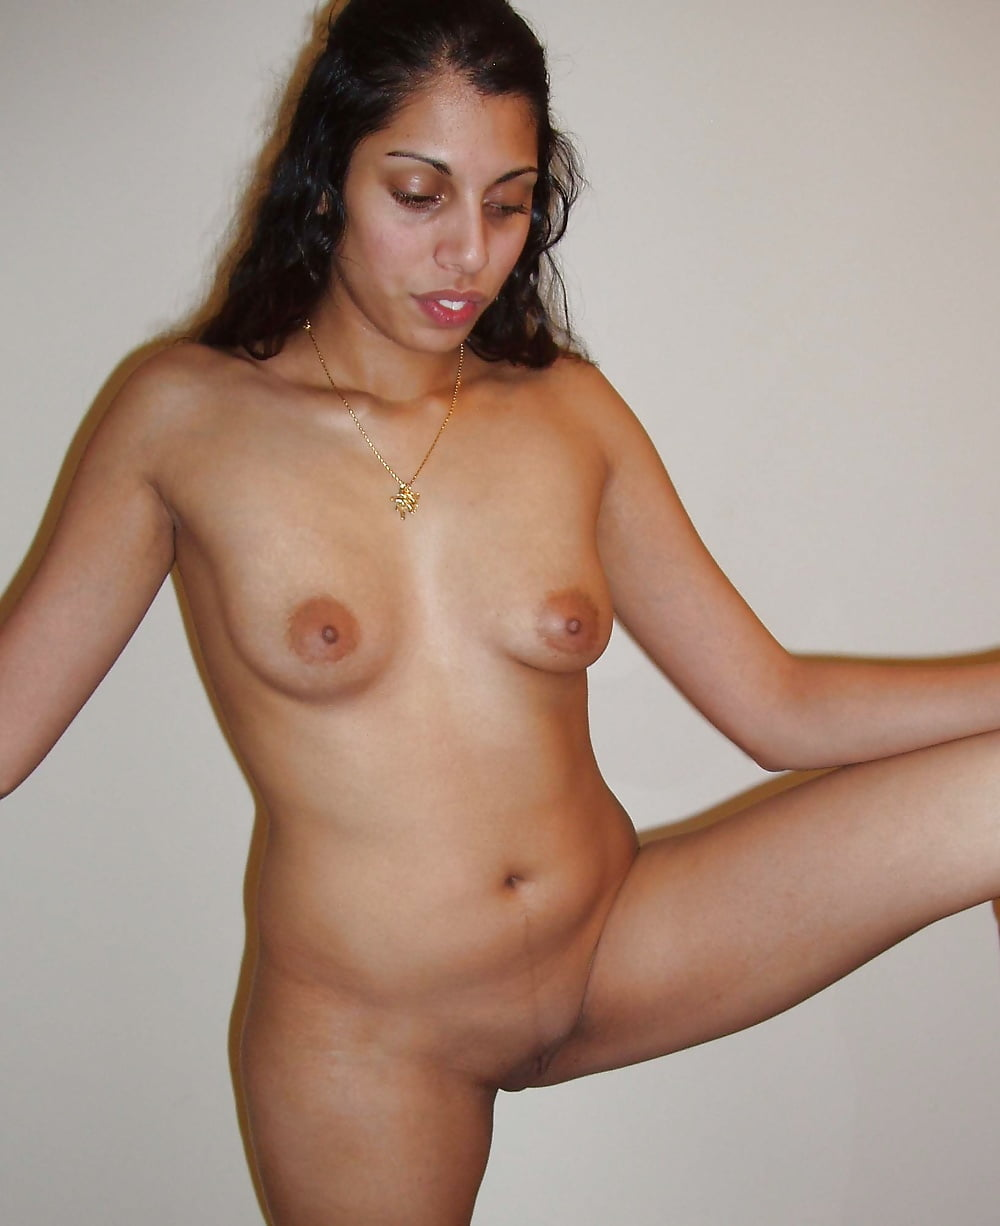 sexy-nude-indian-college-women-make-me-a-supermodel-nude-pics